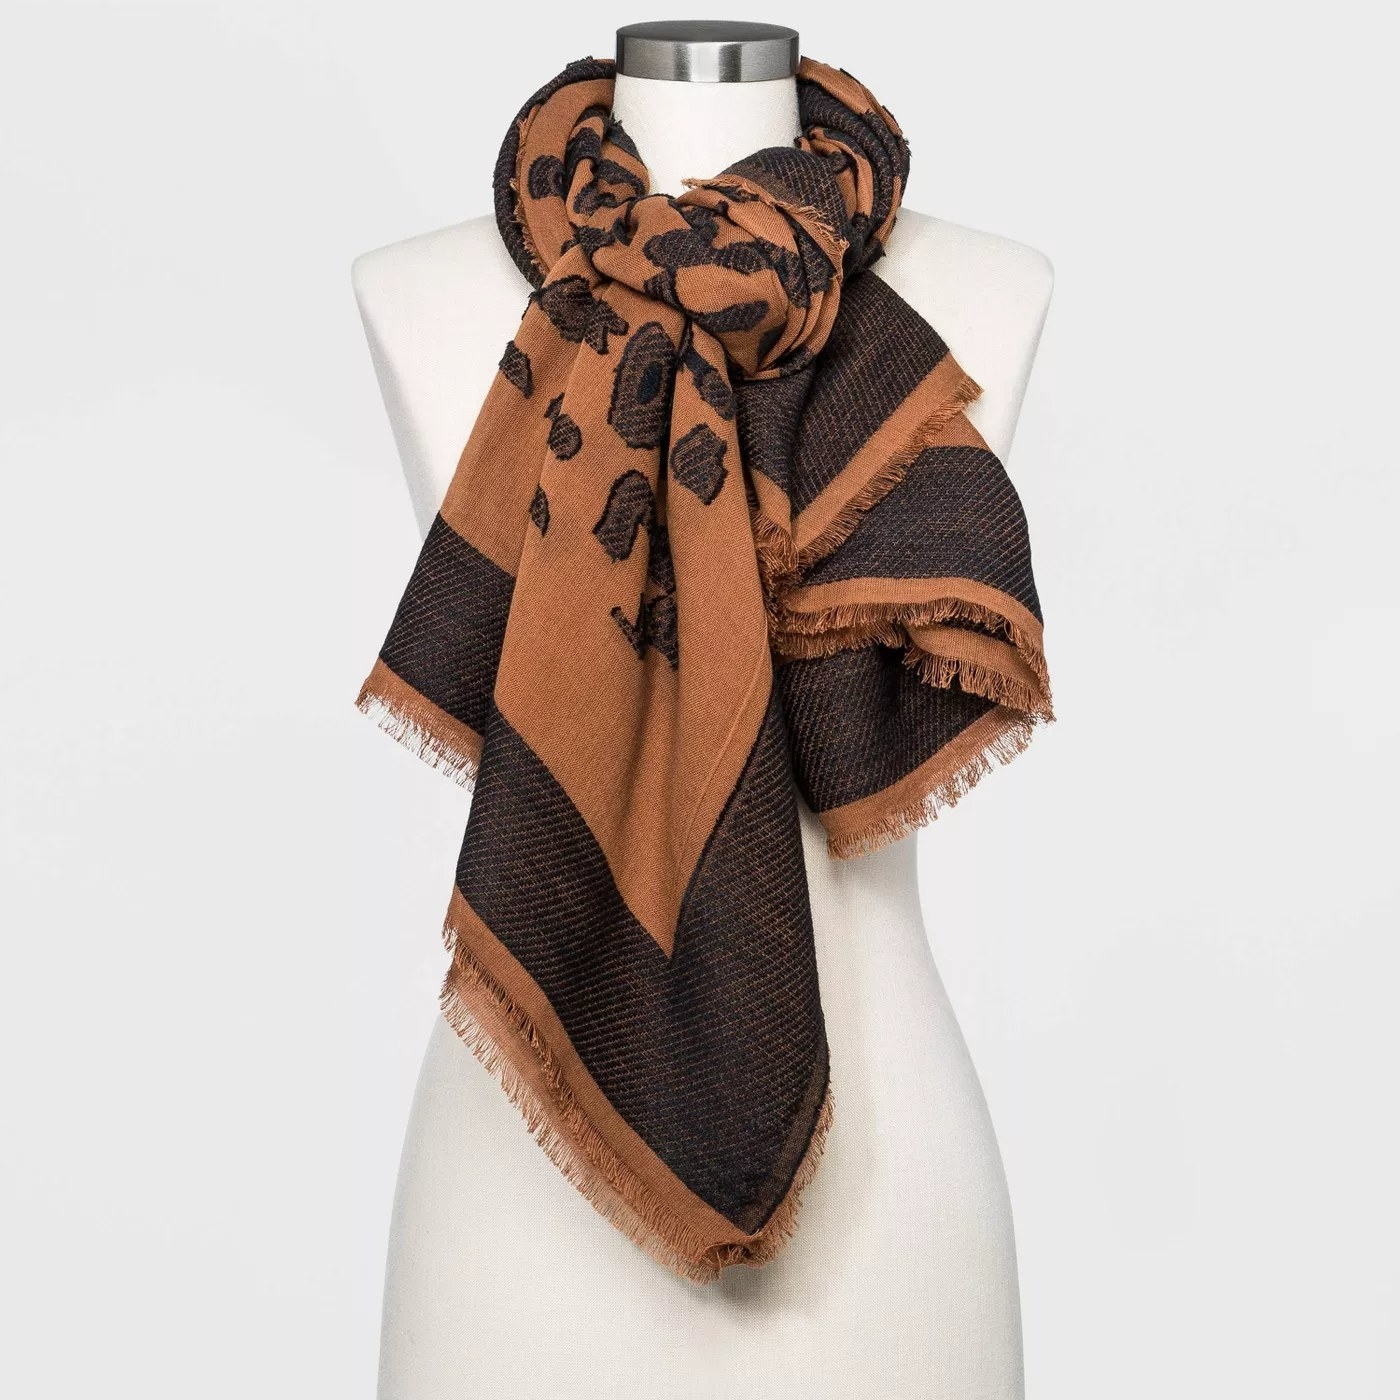 A black and brown scarf that is tied